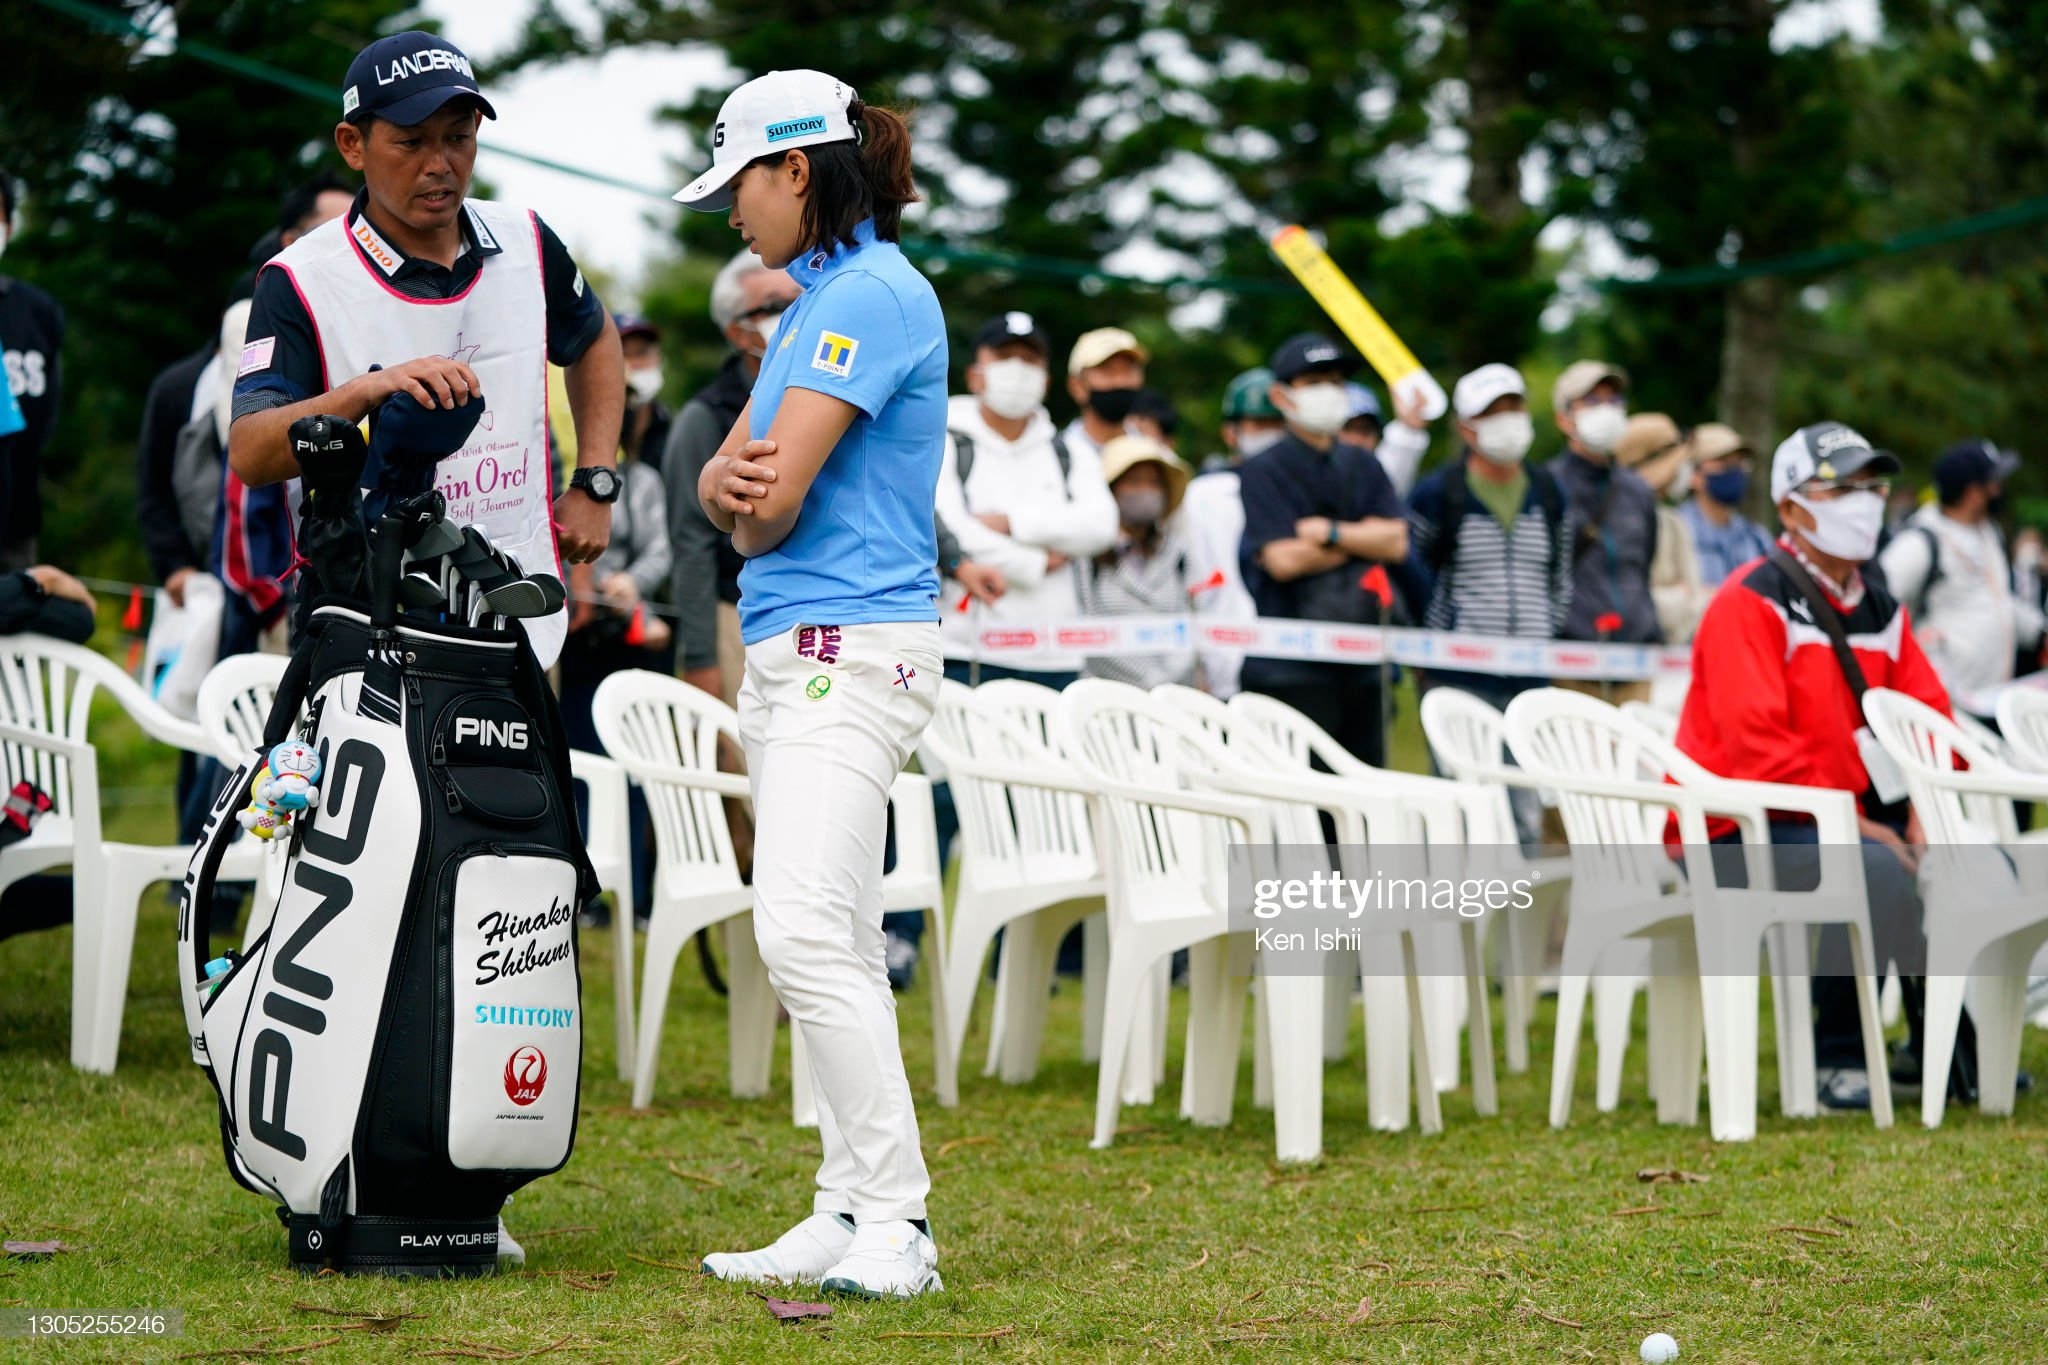 https://media.gettyimages.com/photos/hinako-shibuno-of-japan-talks-with-her-caddie-before-an-approach-on-picture-id1305255246?s=2048x2048